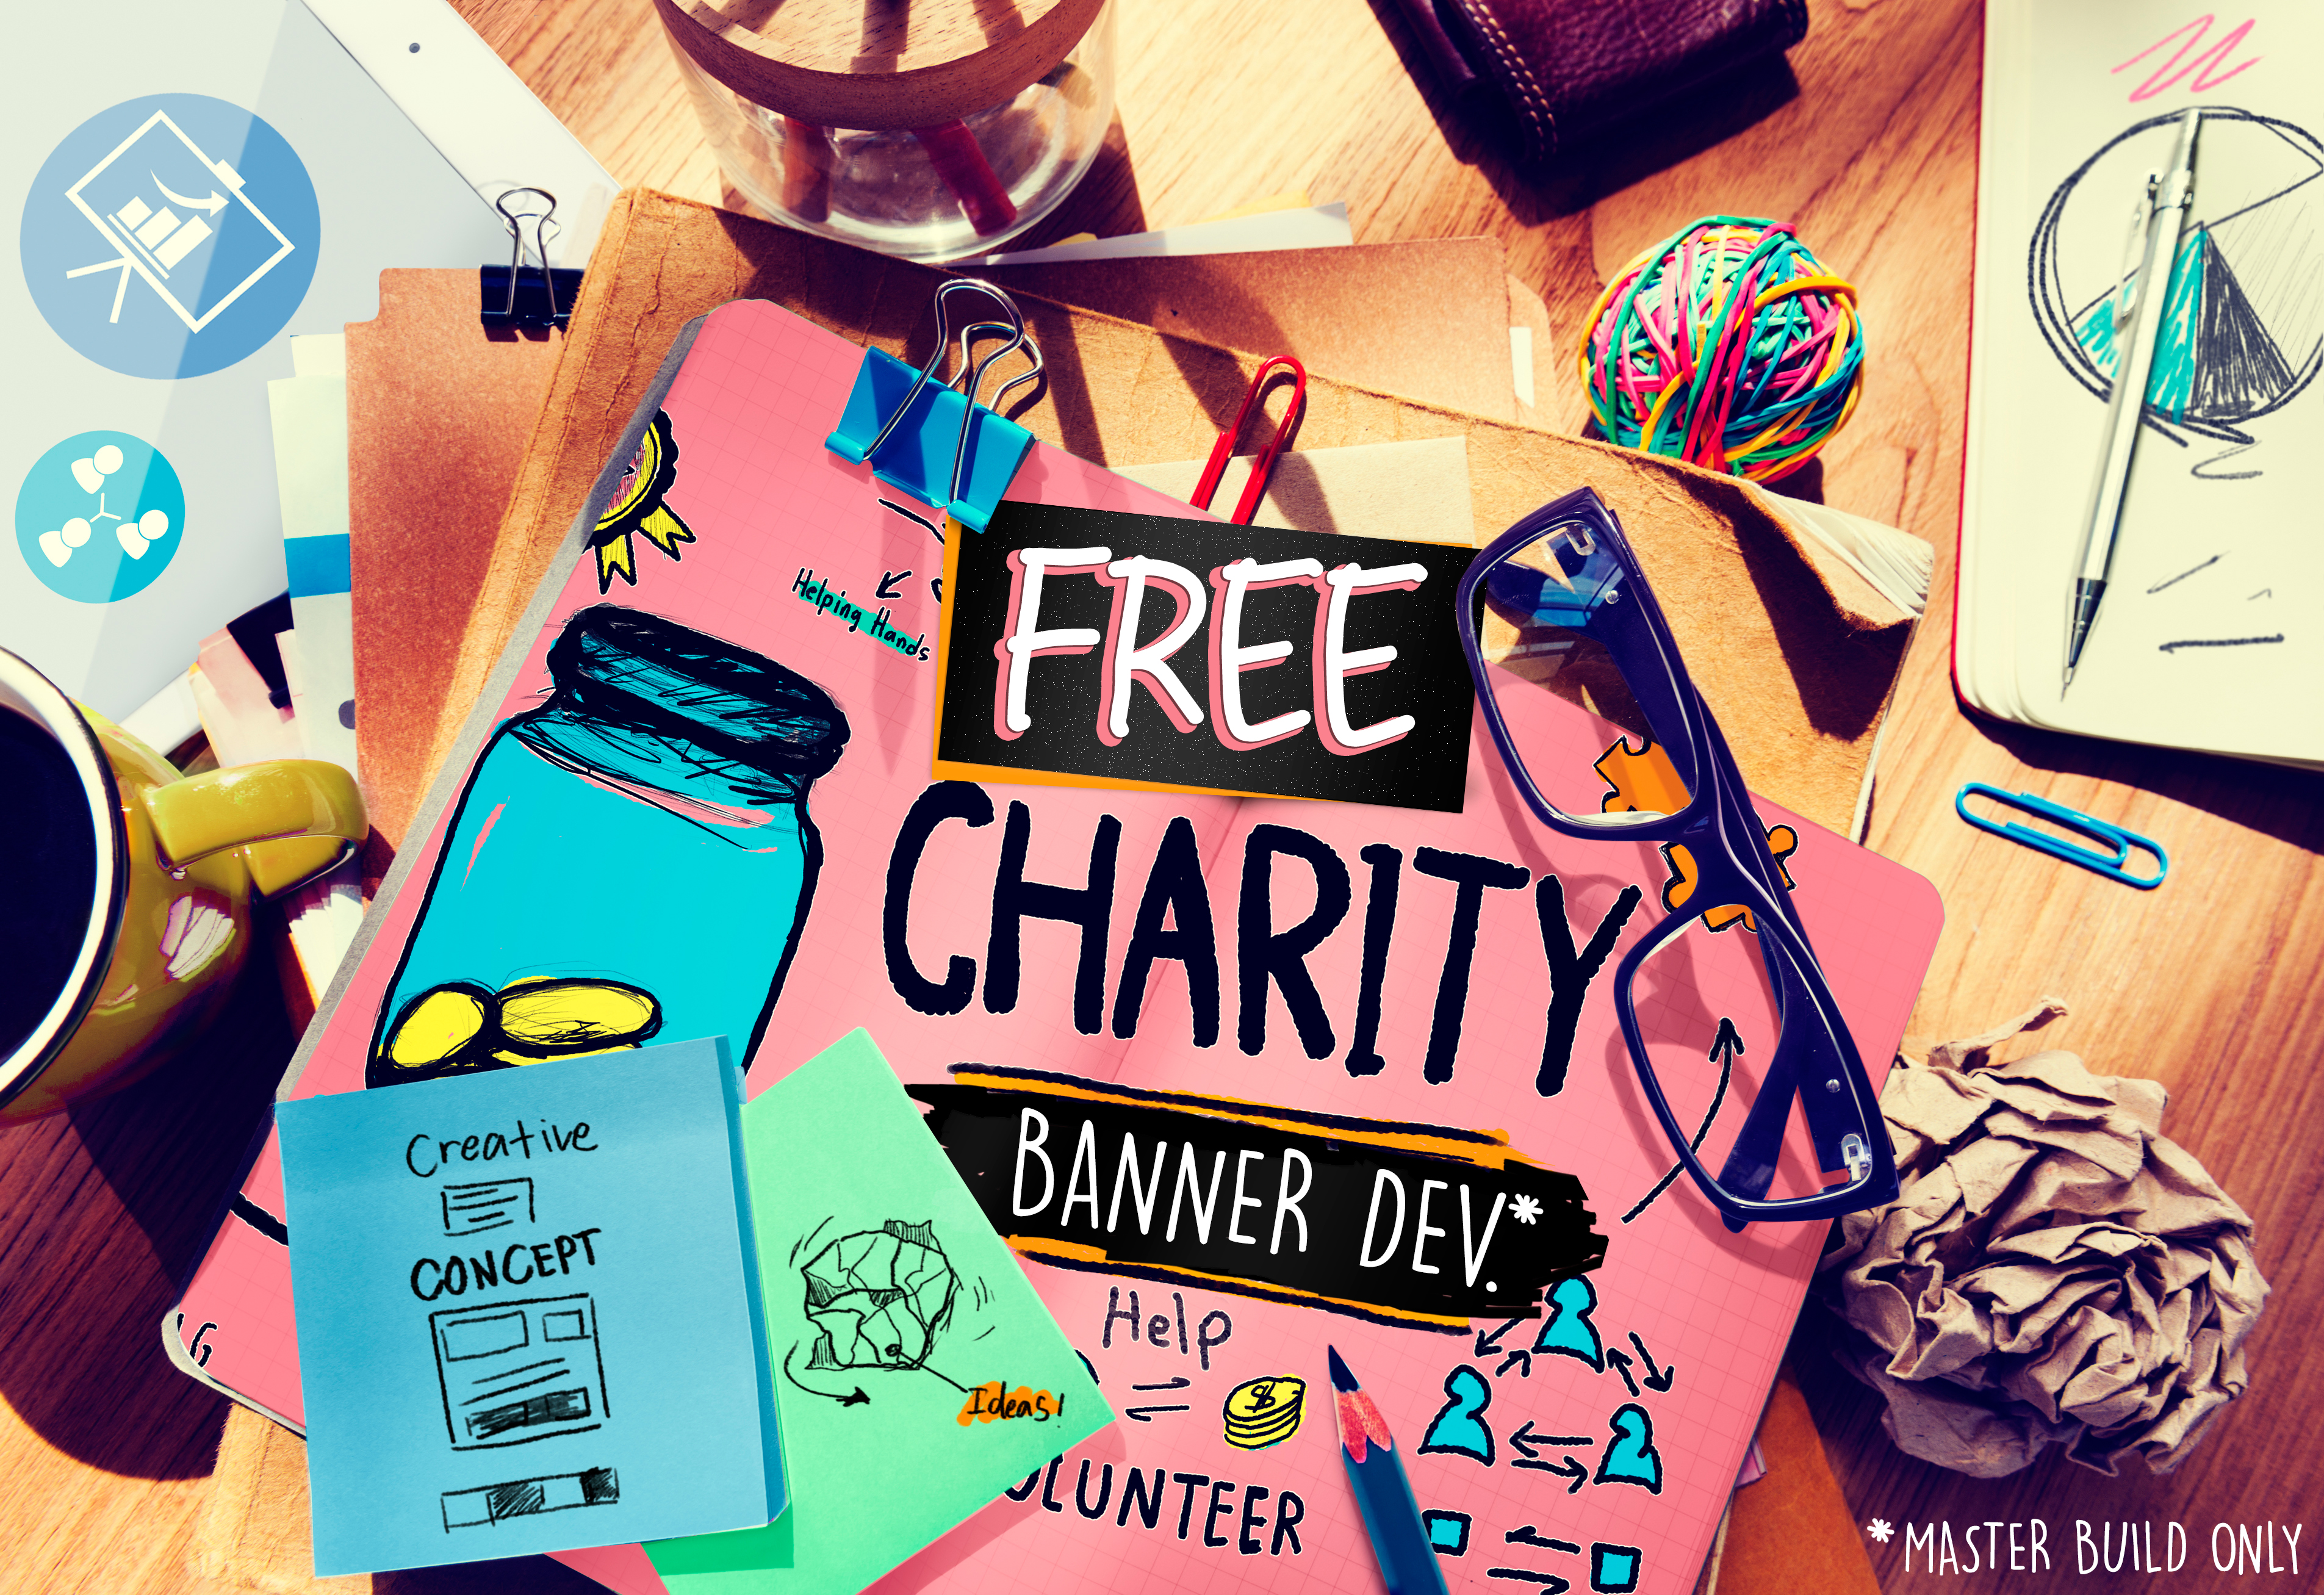 FREE CHARITY BANNER DEV!